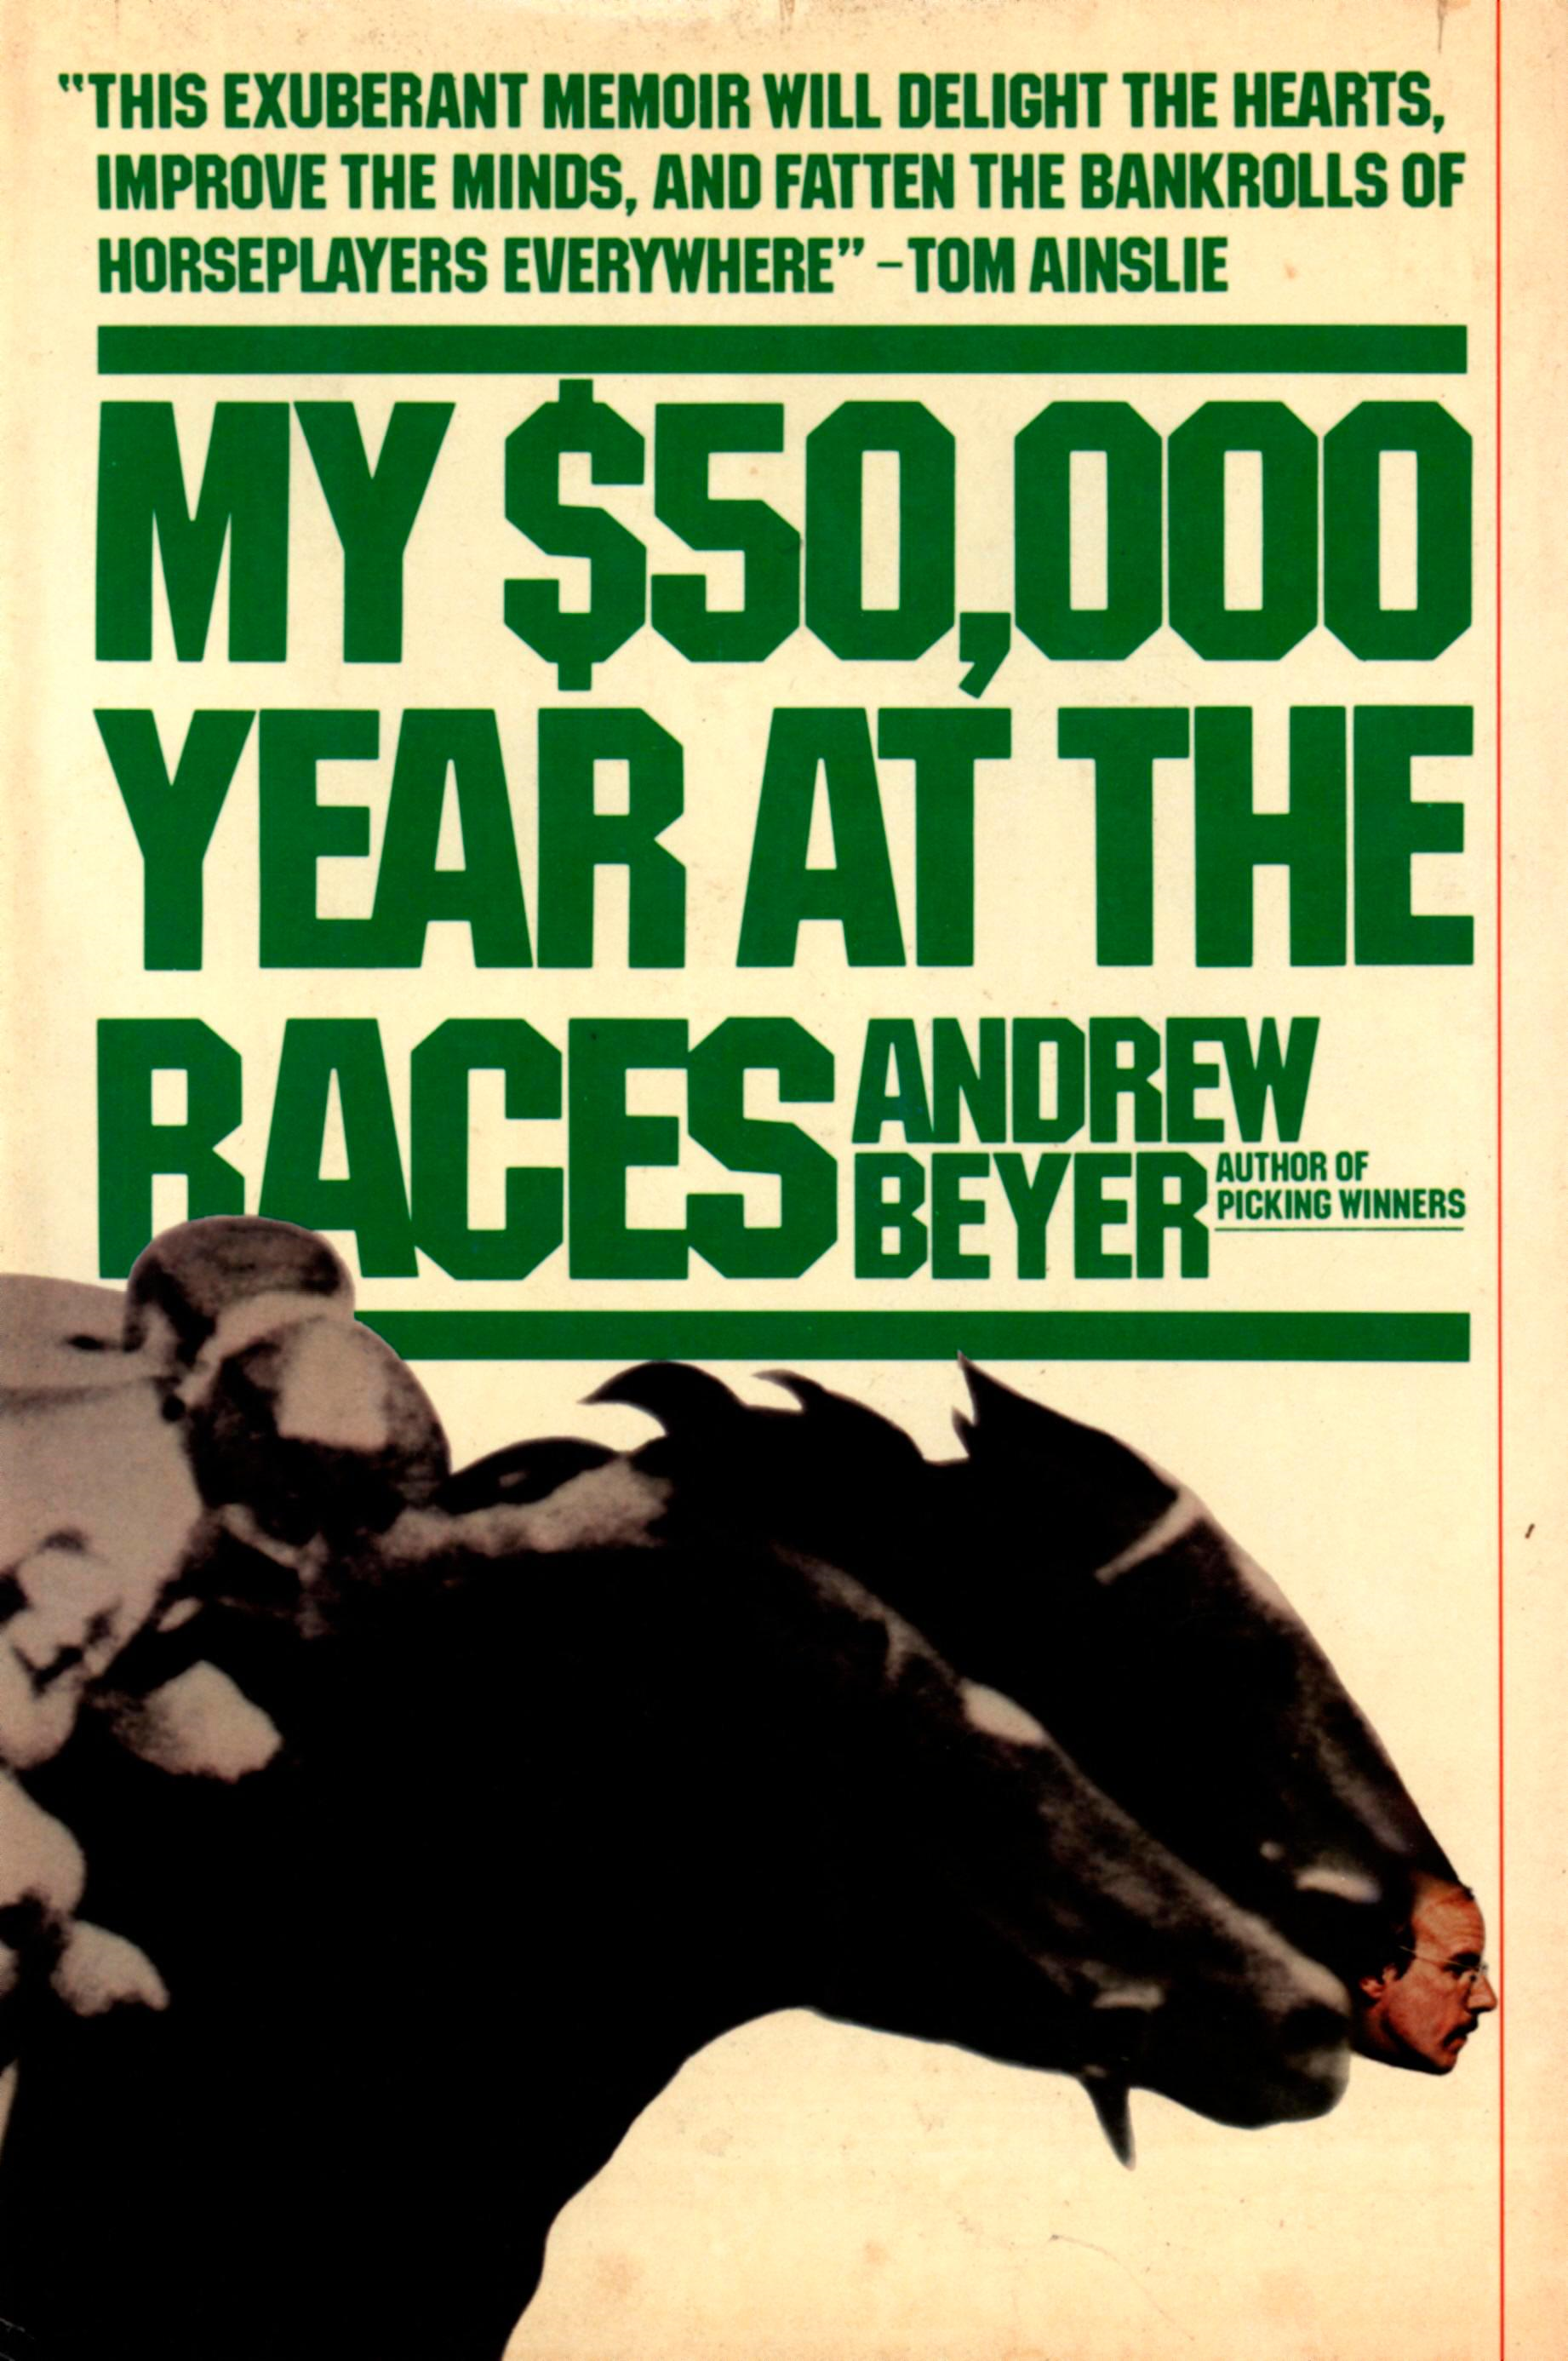 My $50,000 Year at the Races By: Andrew Beyer